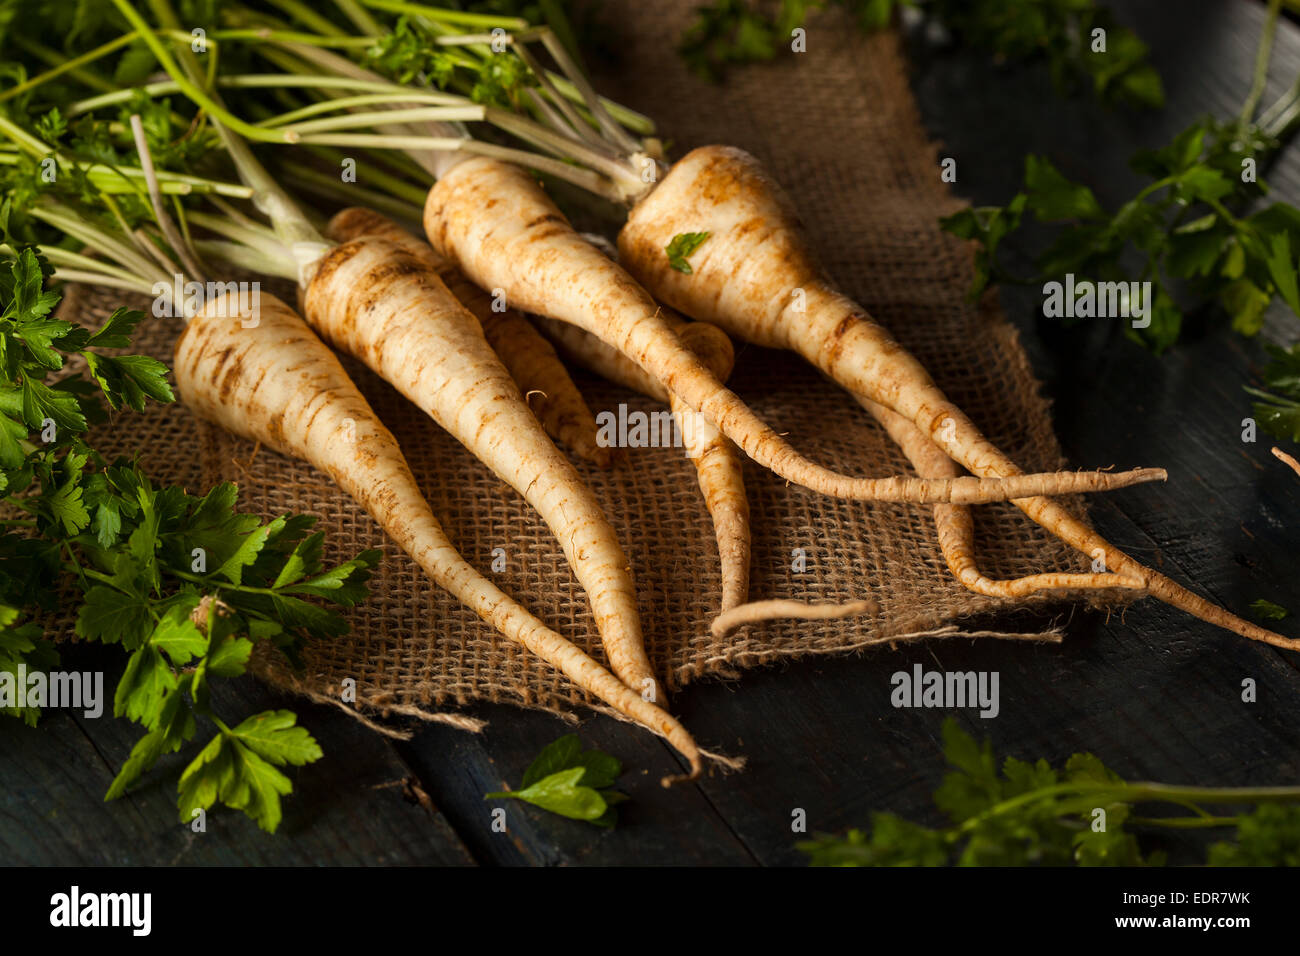 Raw Organic Parsley Root on a Background - Stock Image